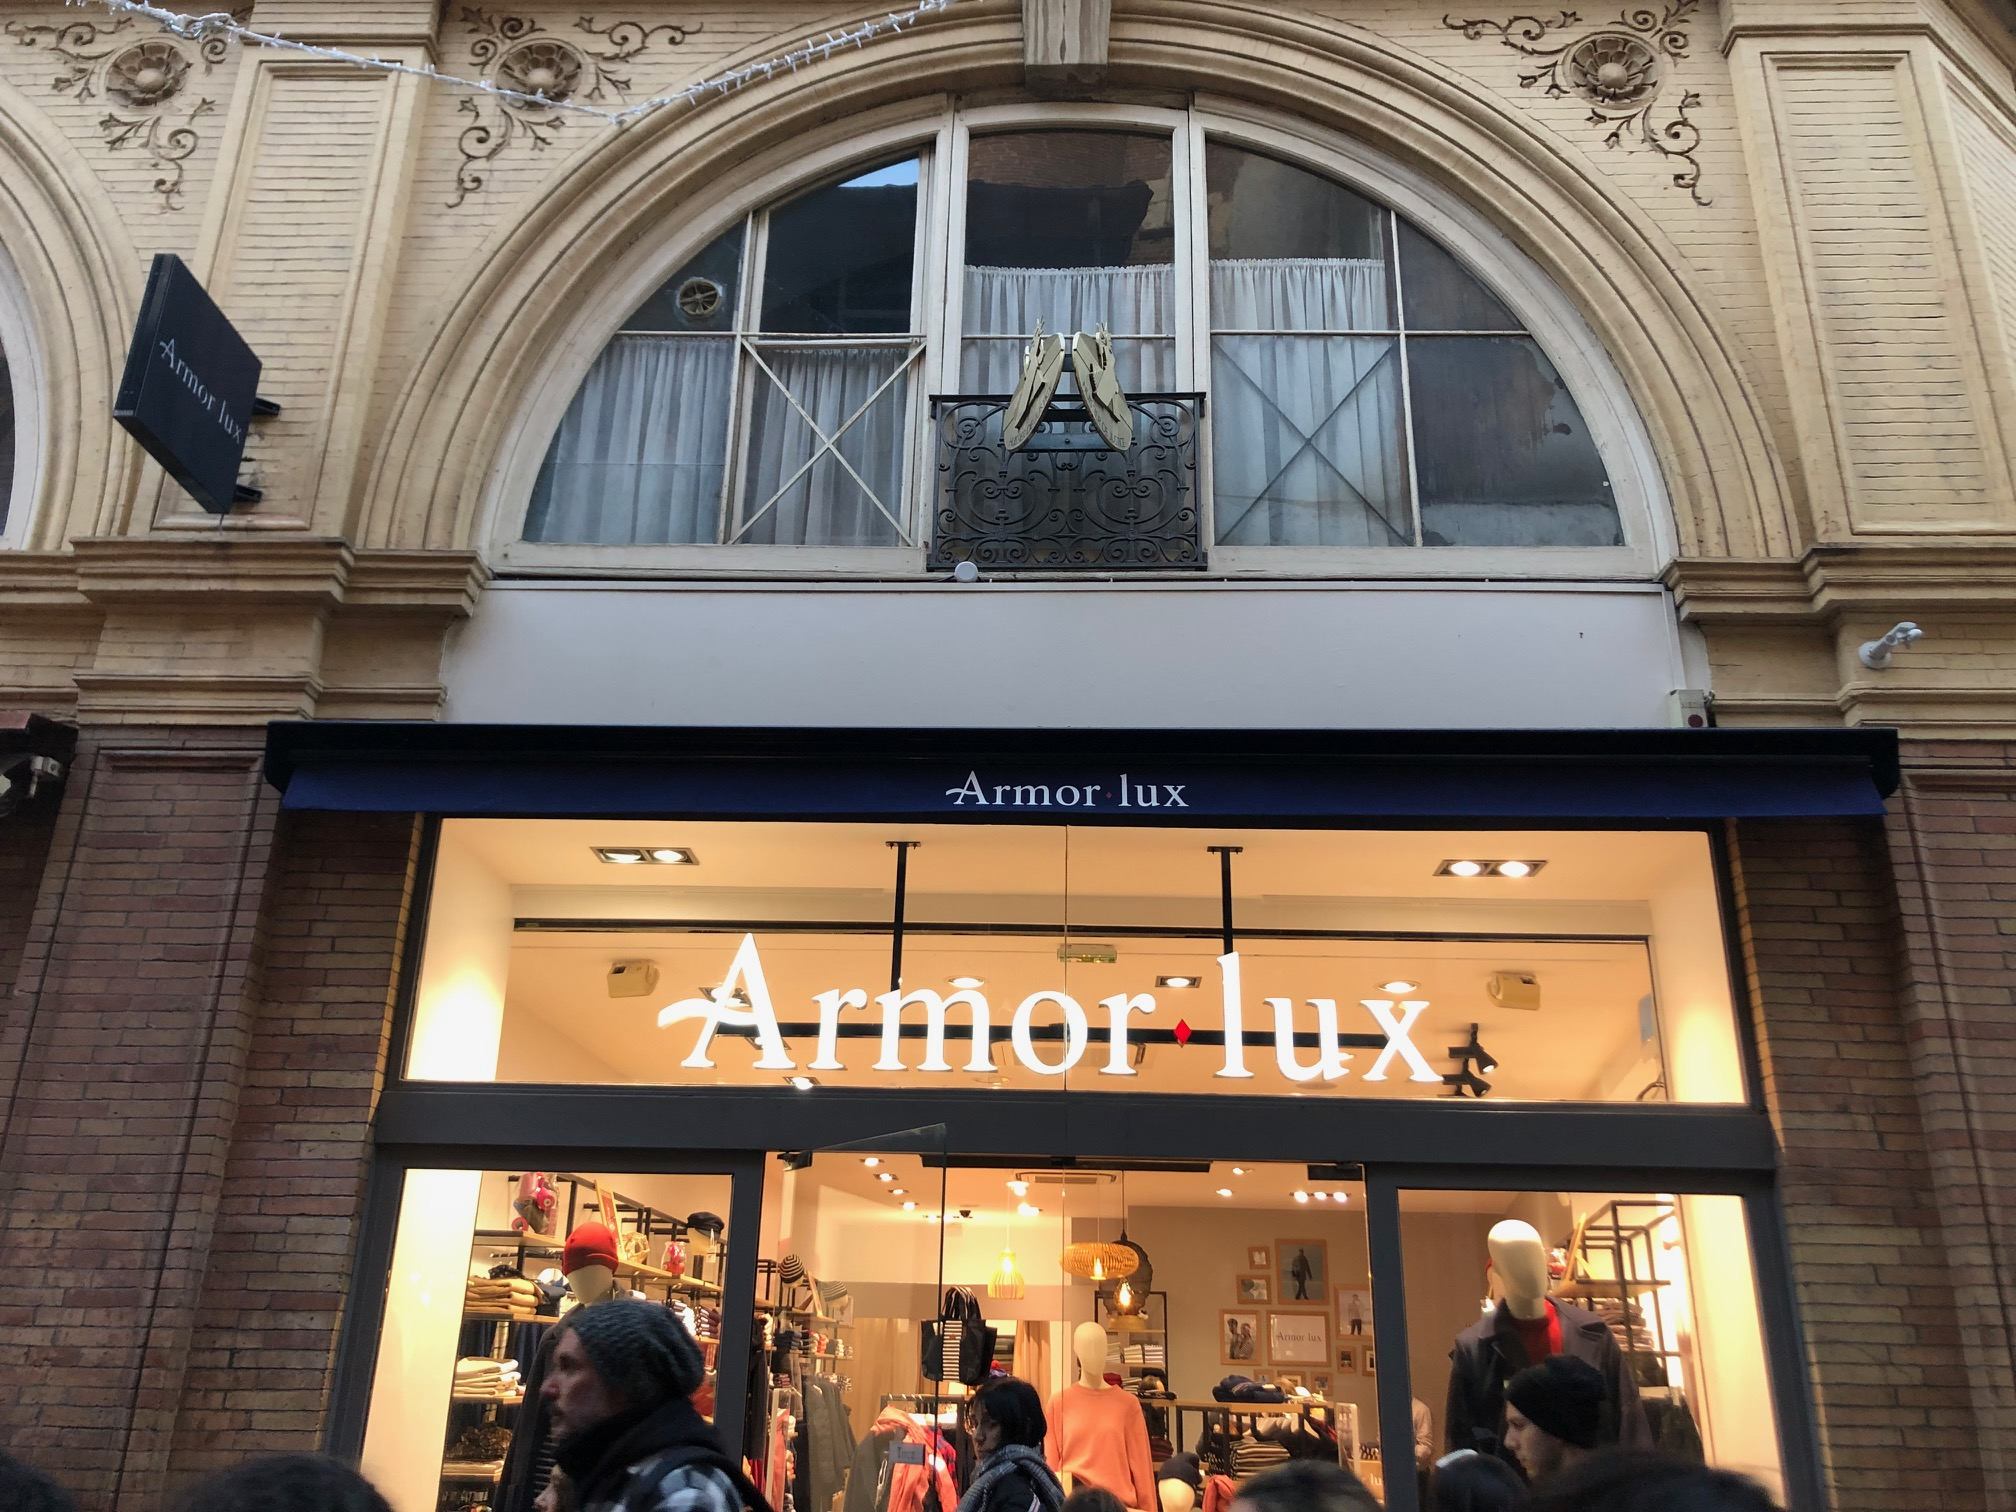 Armor lux - Toulouse1